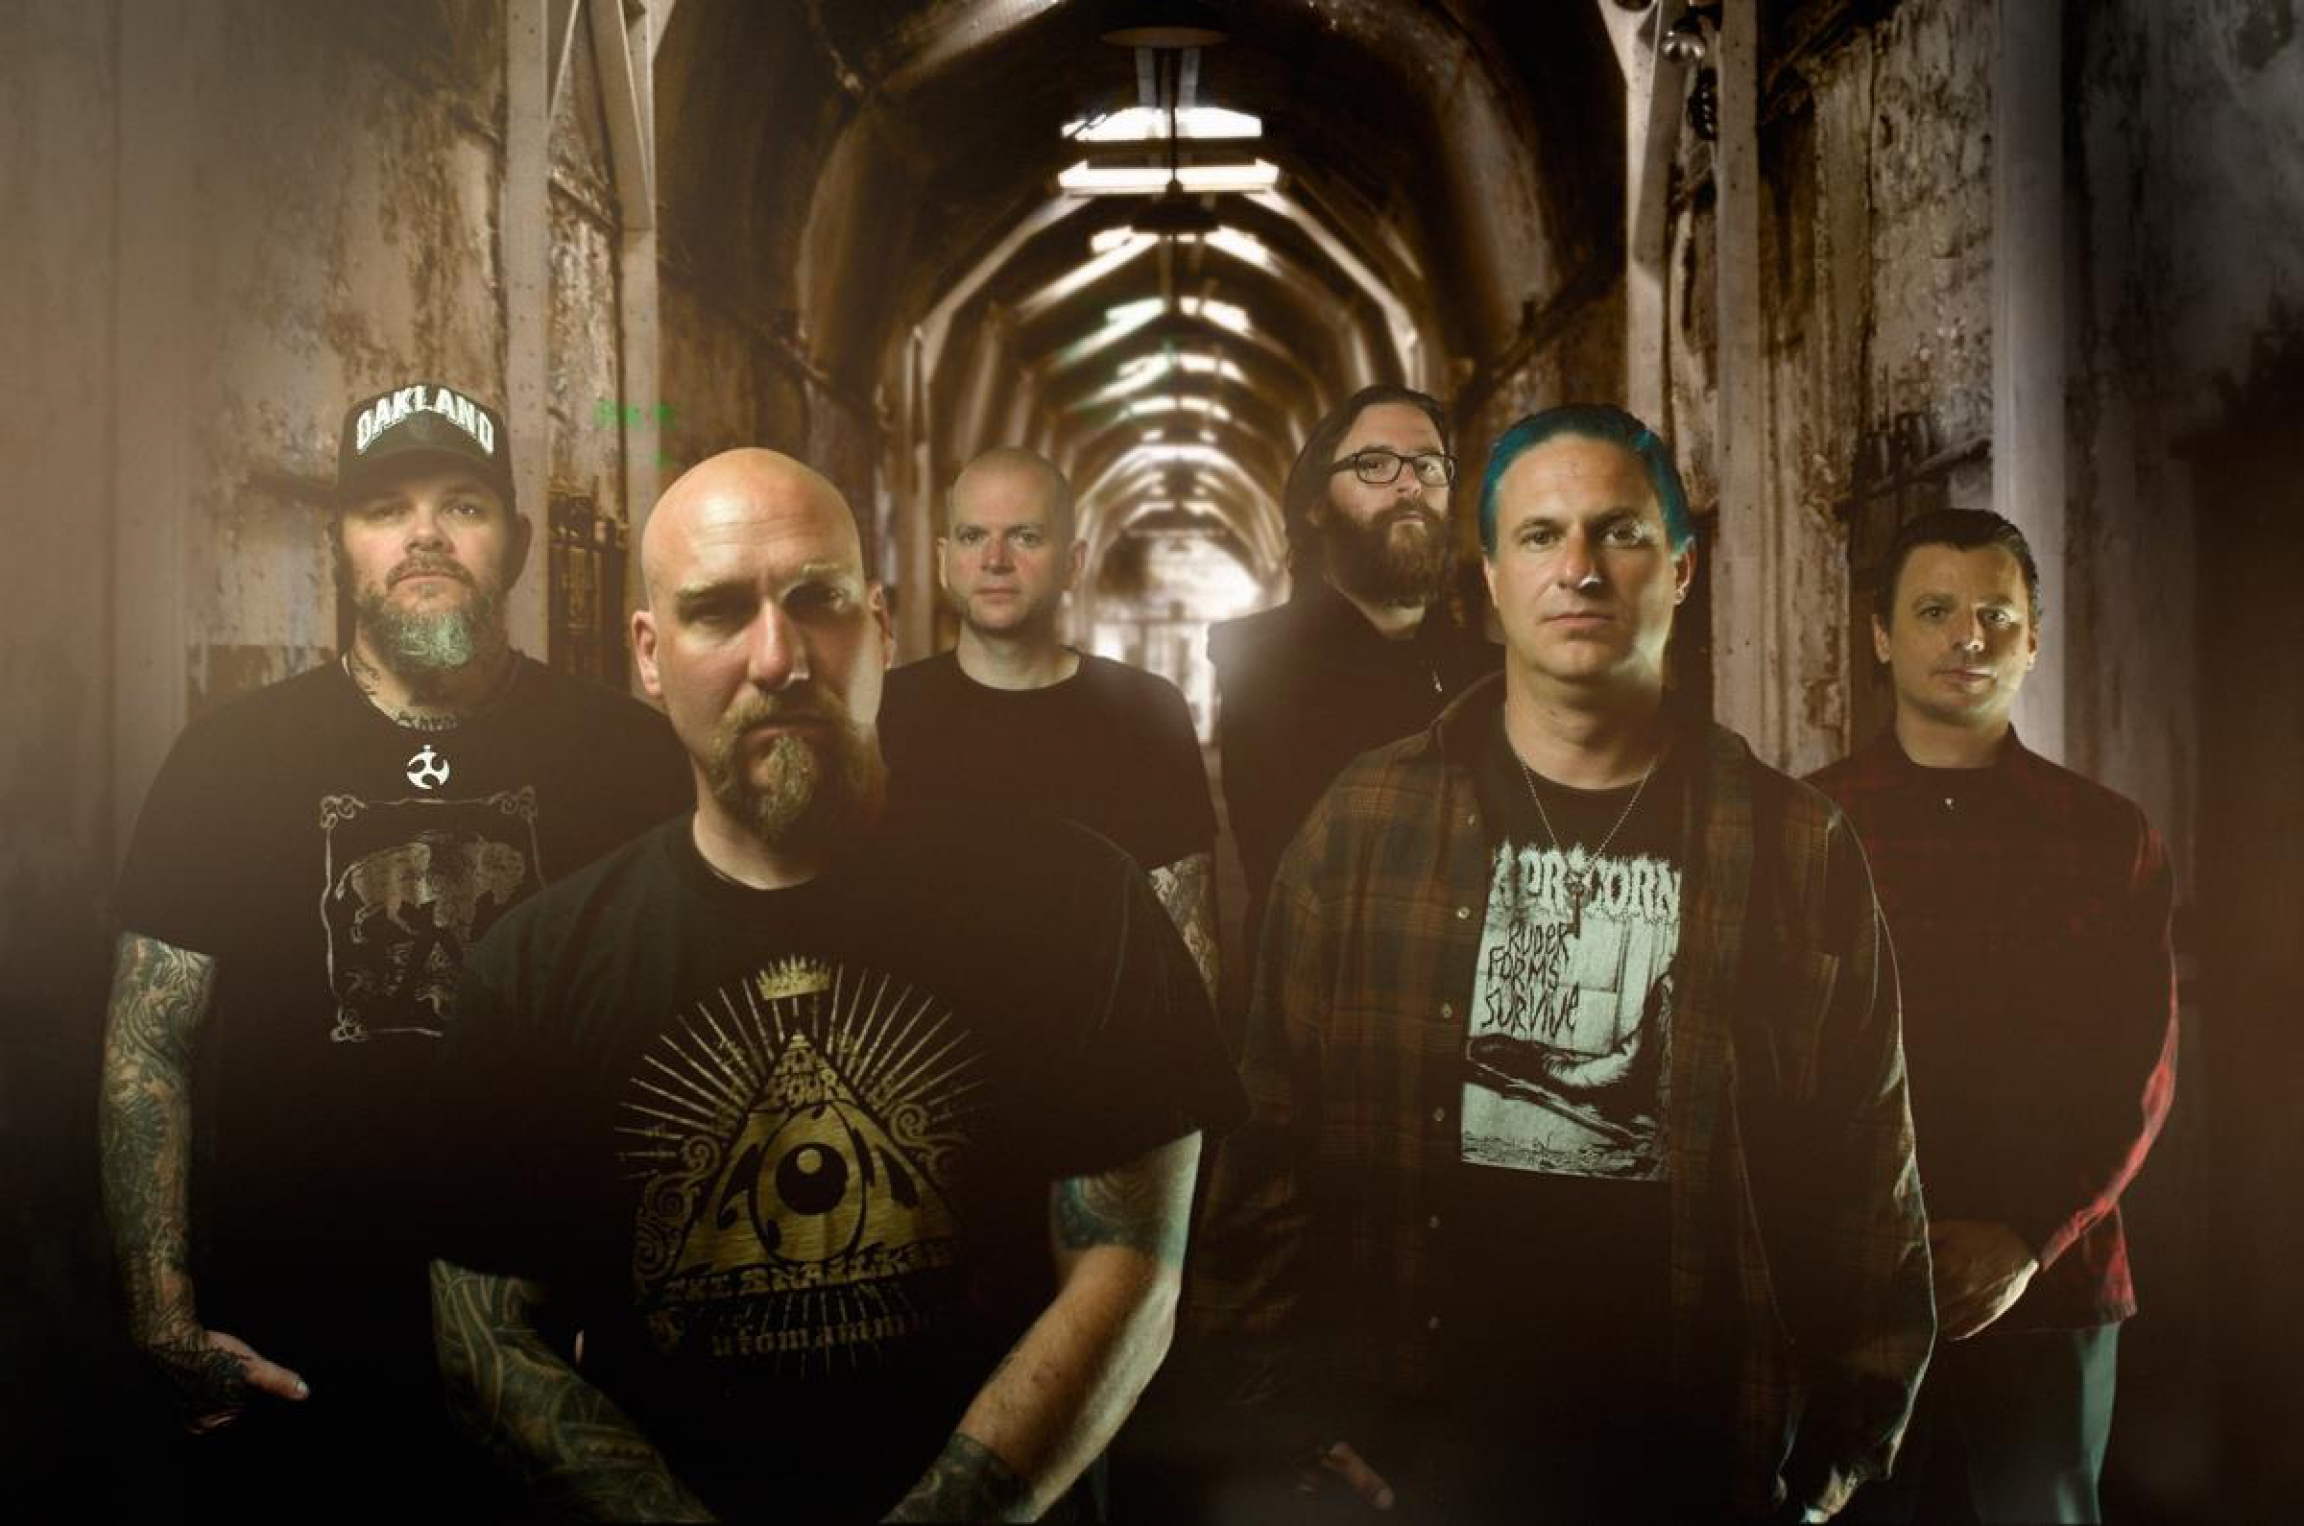 Steve Von Till (front, left) and his band Neurosis.